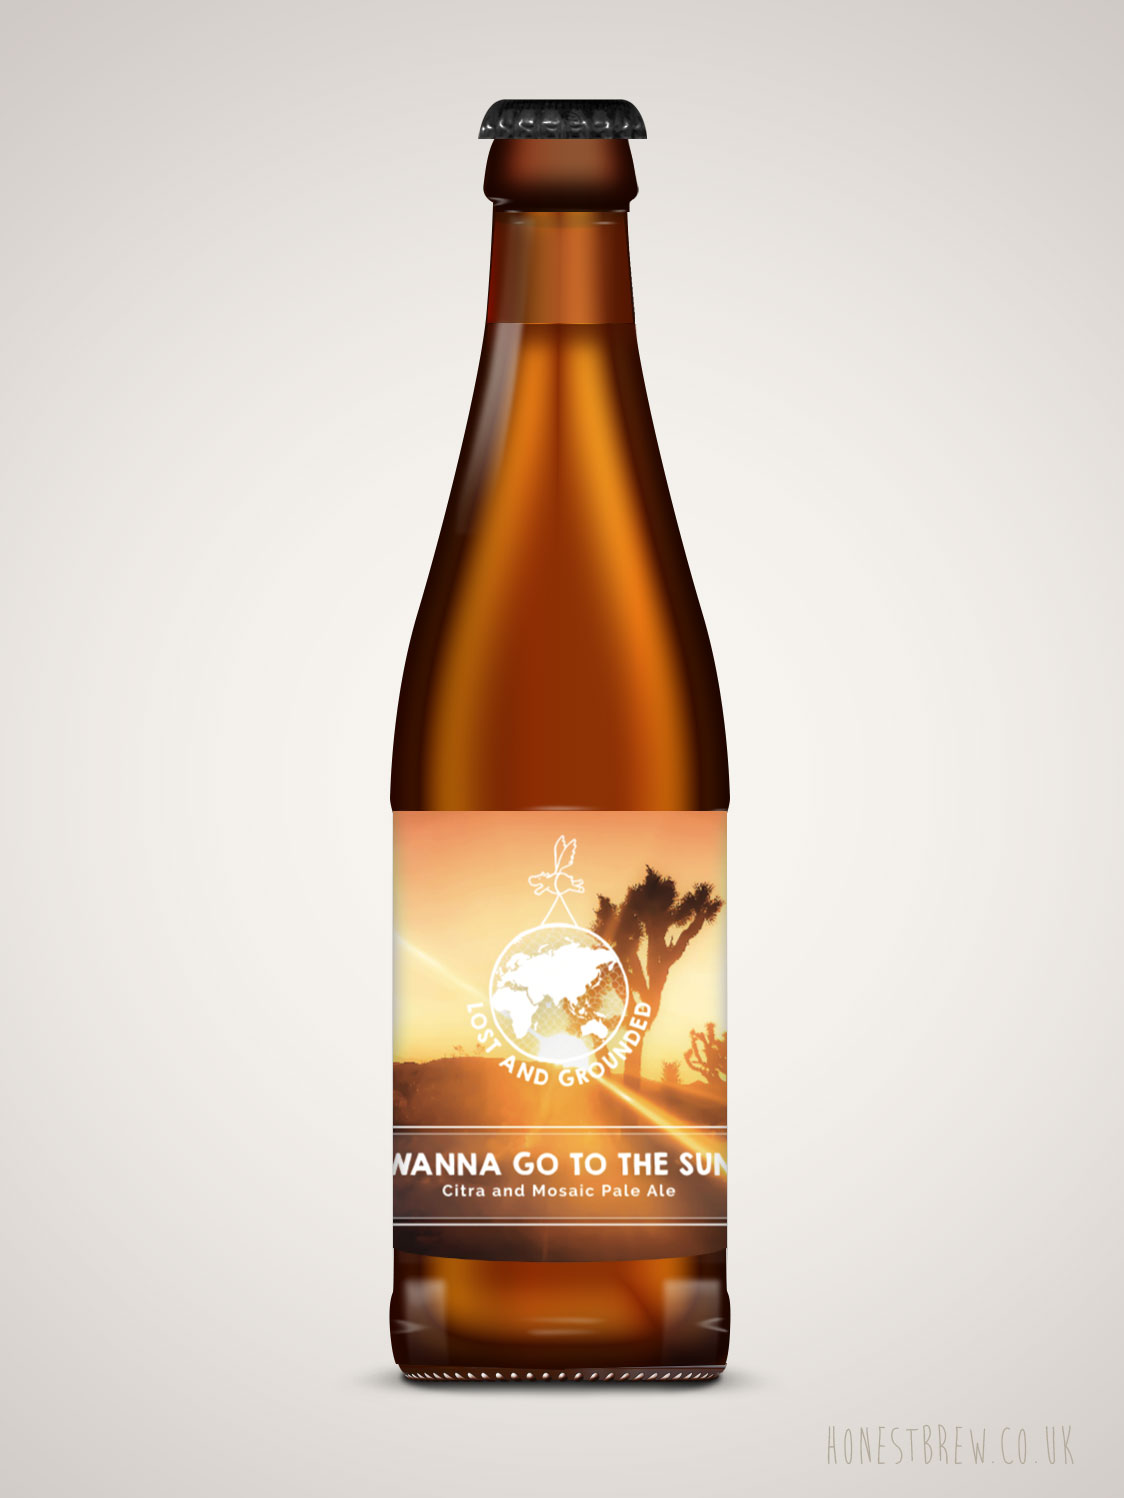 Lost-Grounded-Wanna-Go-To-The-Sun-Pale-Ale-4.6_-Bottle-330ml.jpg